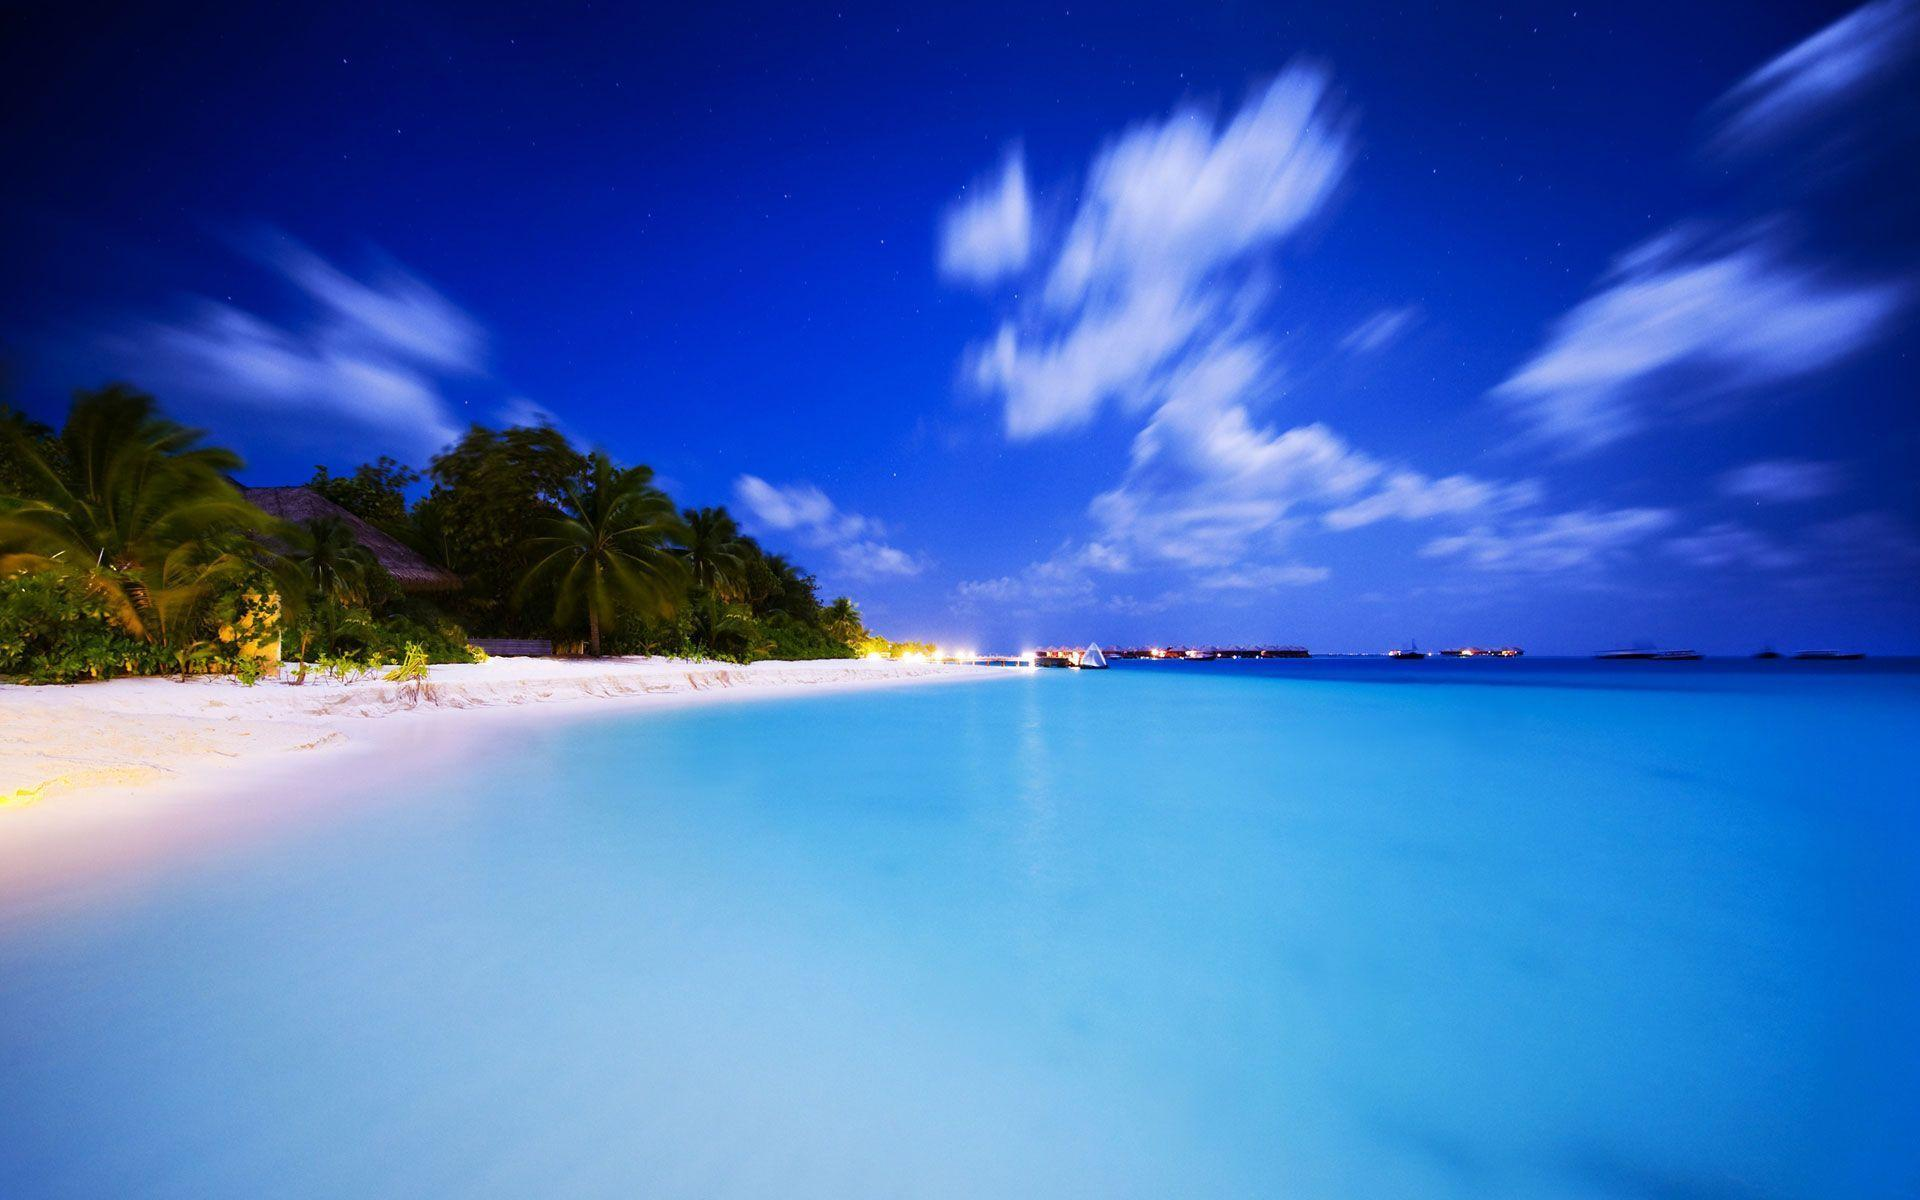 tropical island backgrounds - photo #16